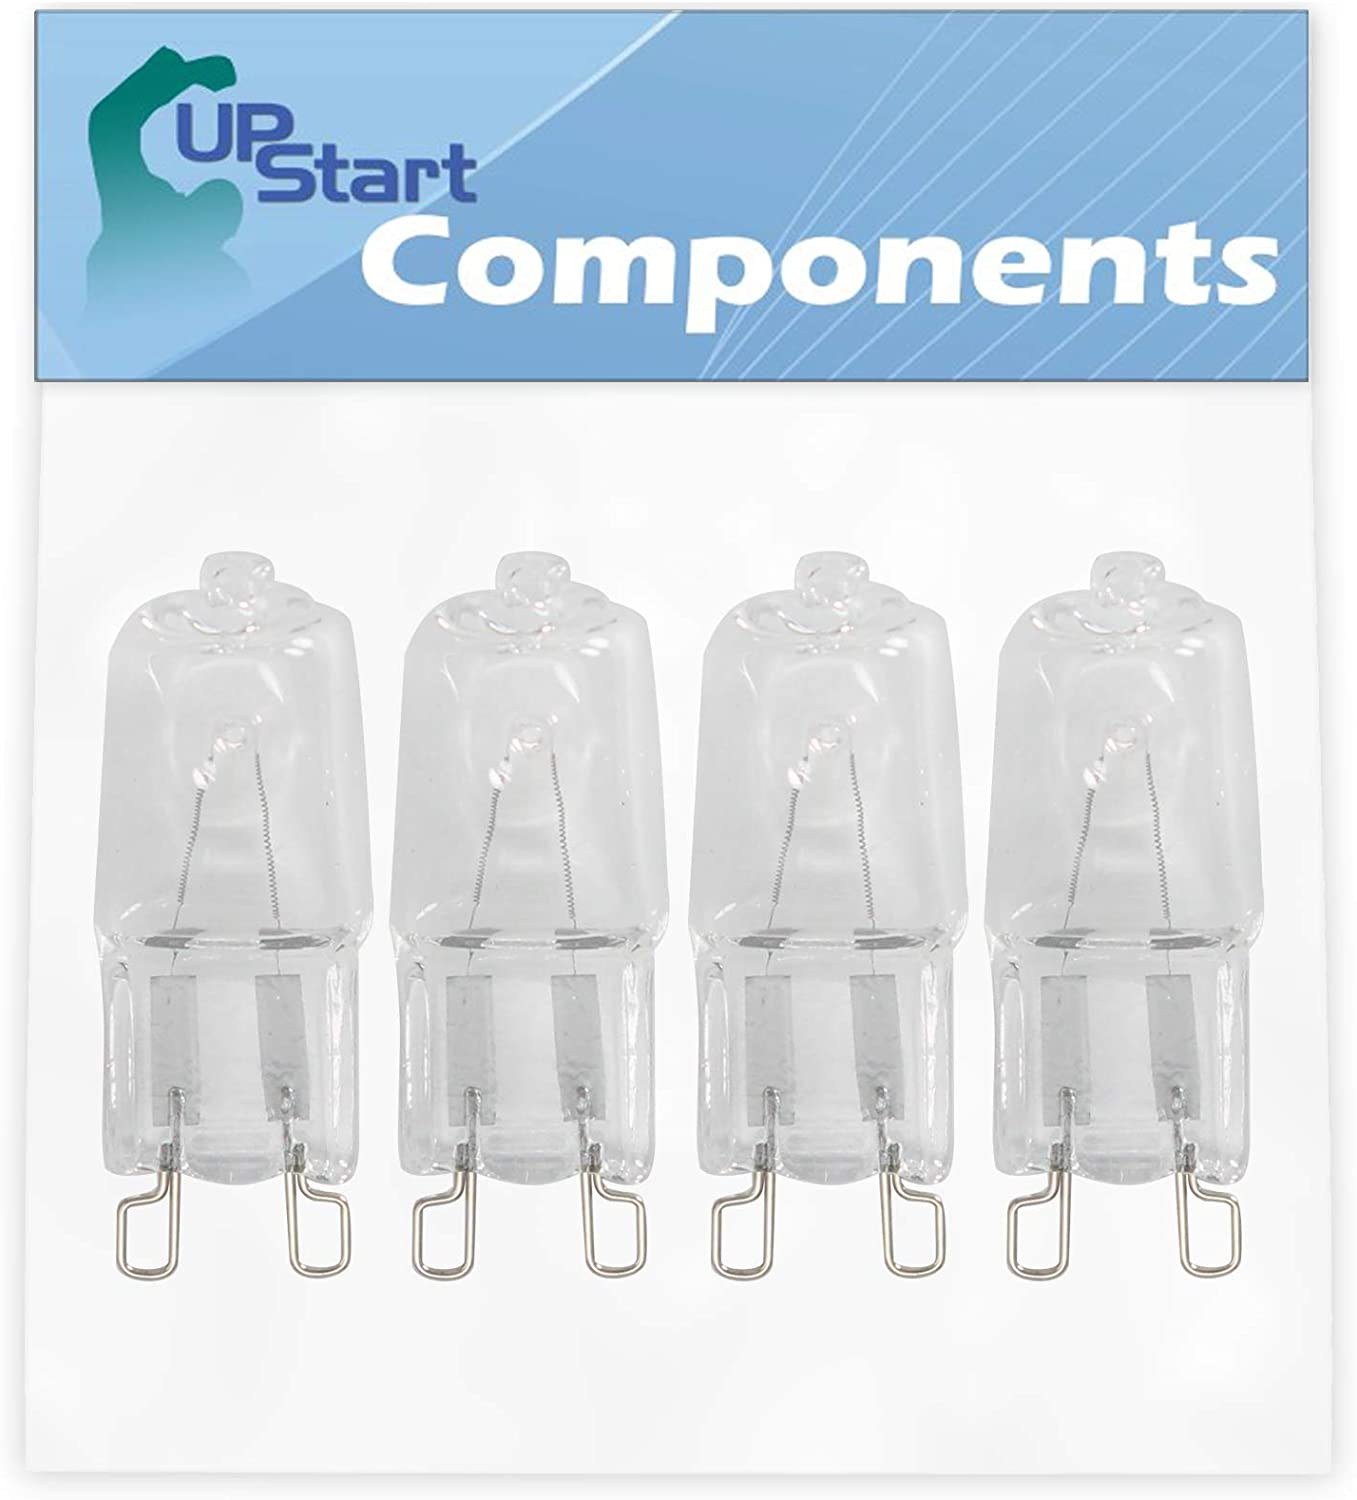 4-Pack W10709921 Microwave Light Bulb Replacement Albuquerque Mall safety Part for Numbe